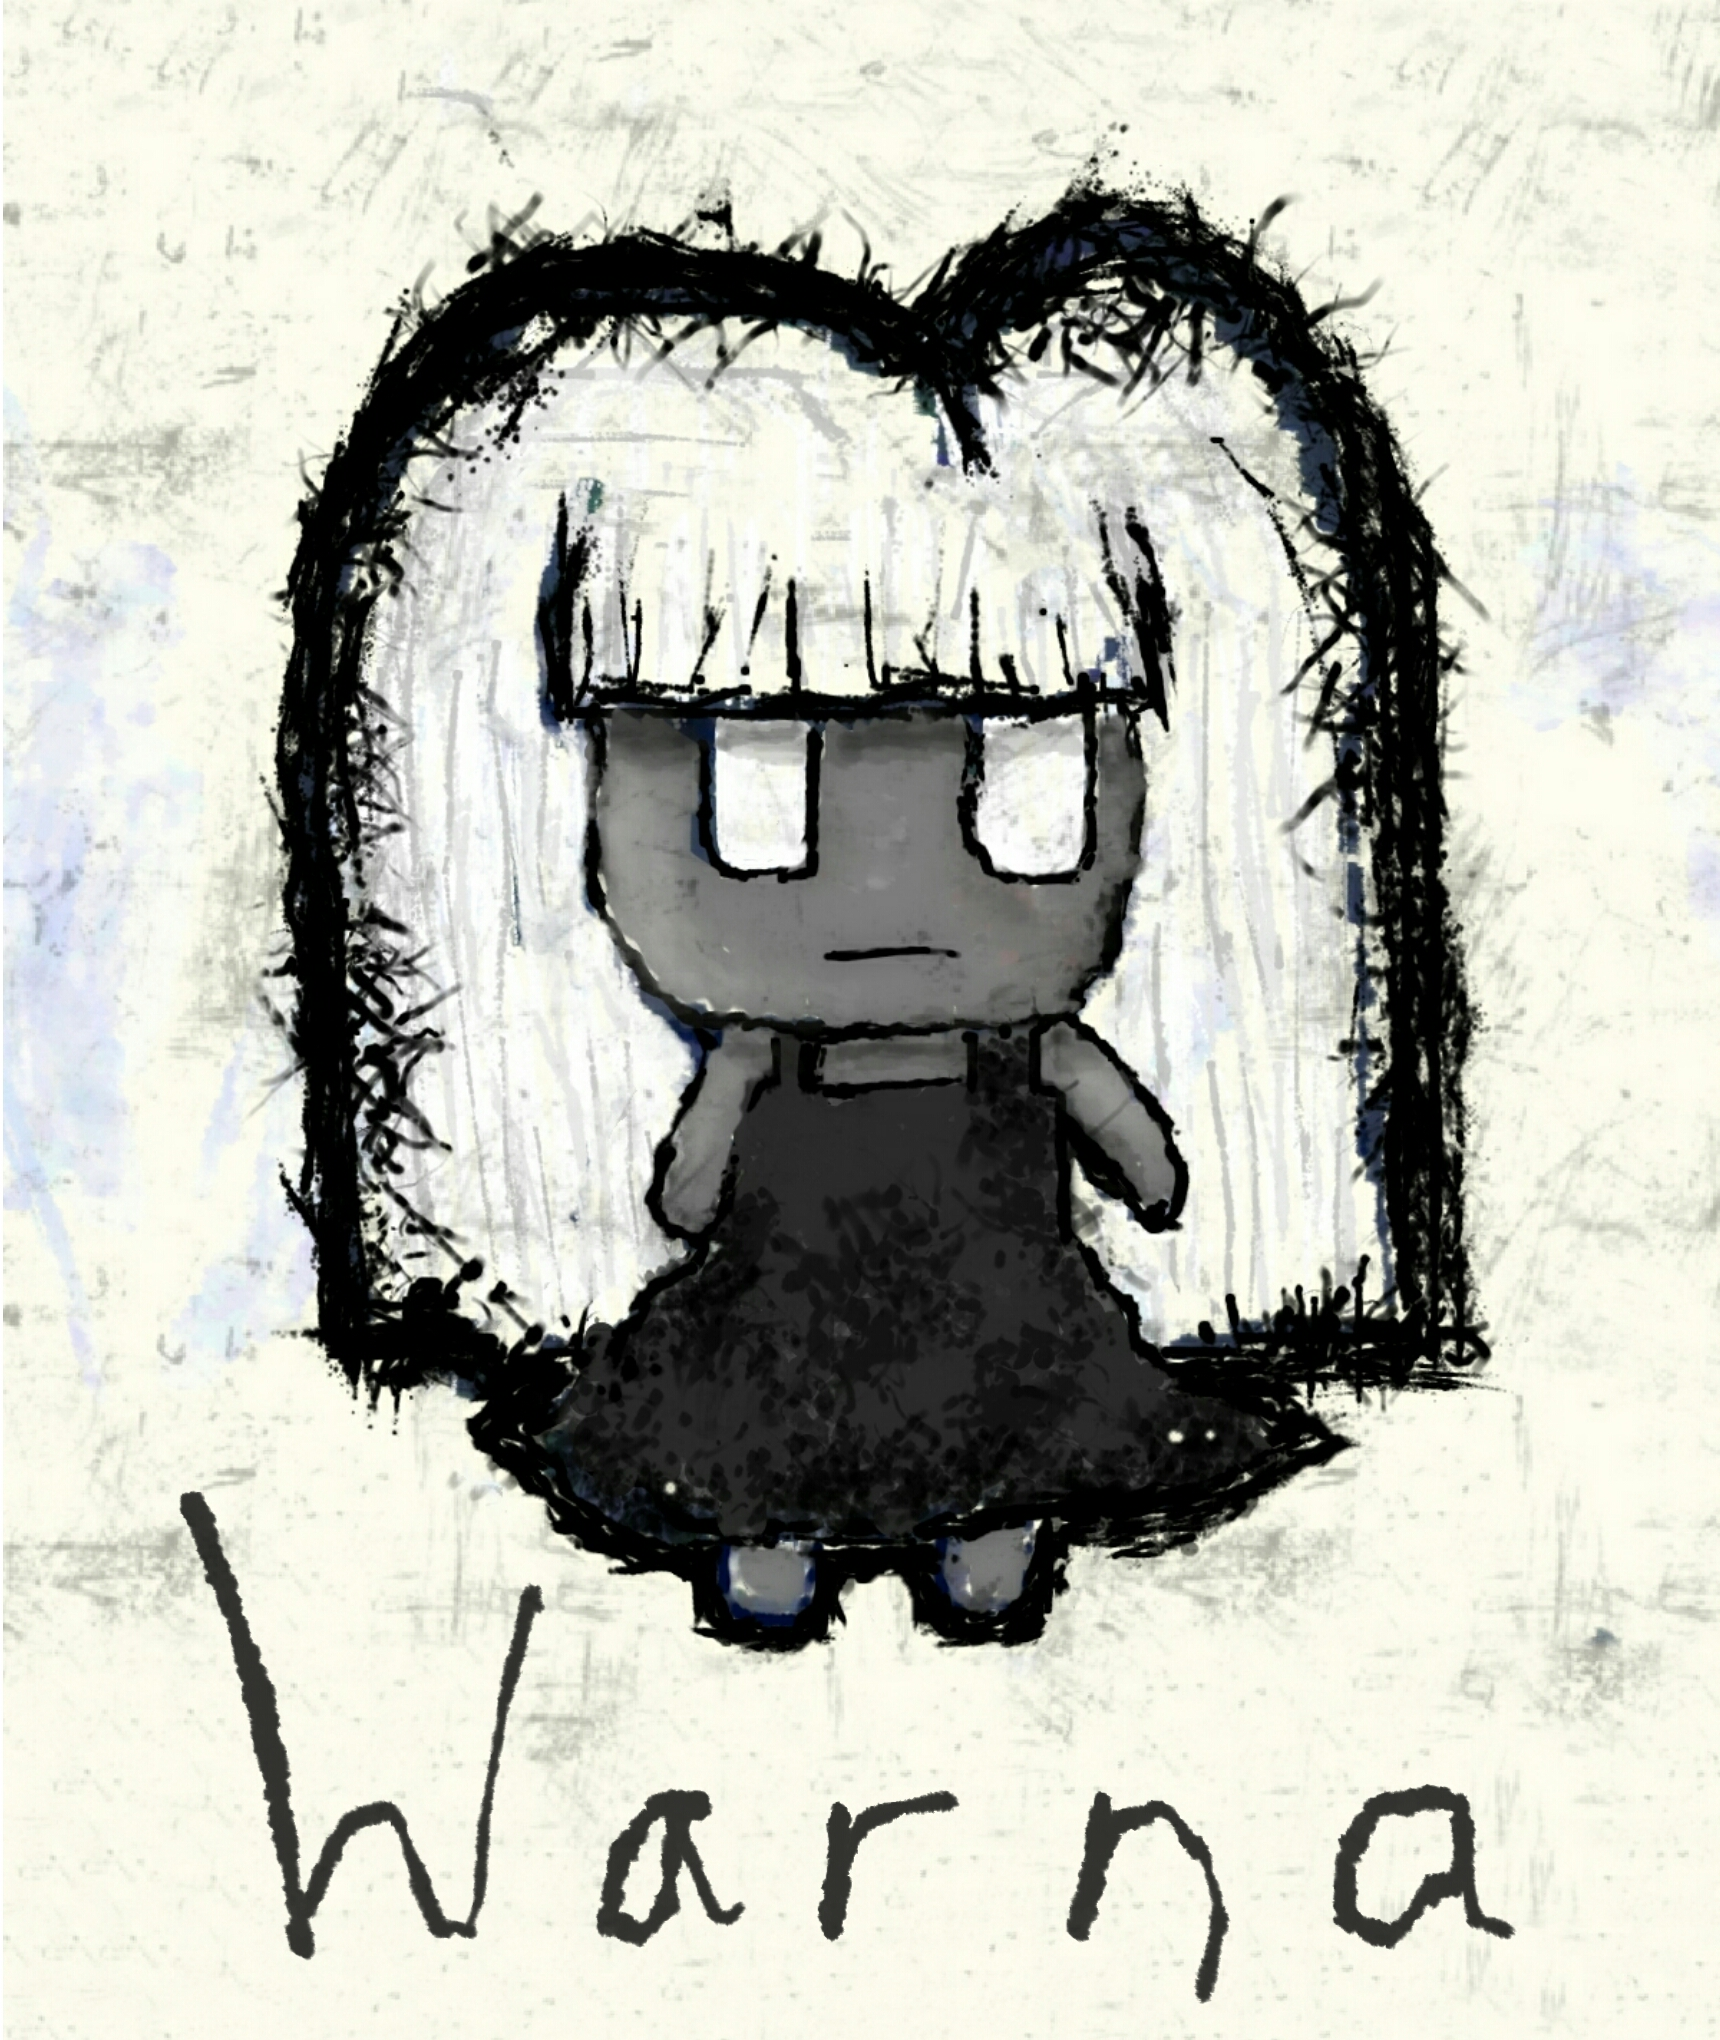 Warna - The main character